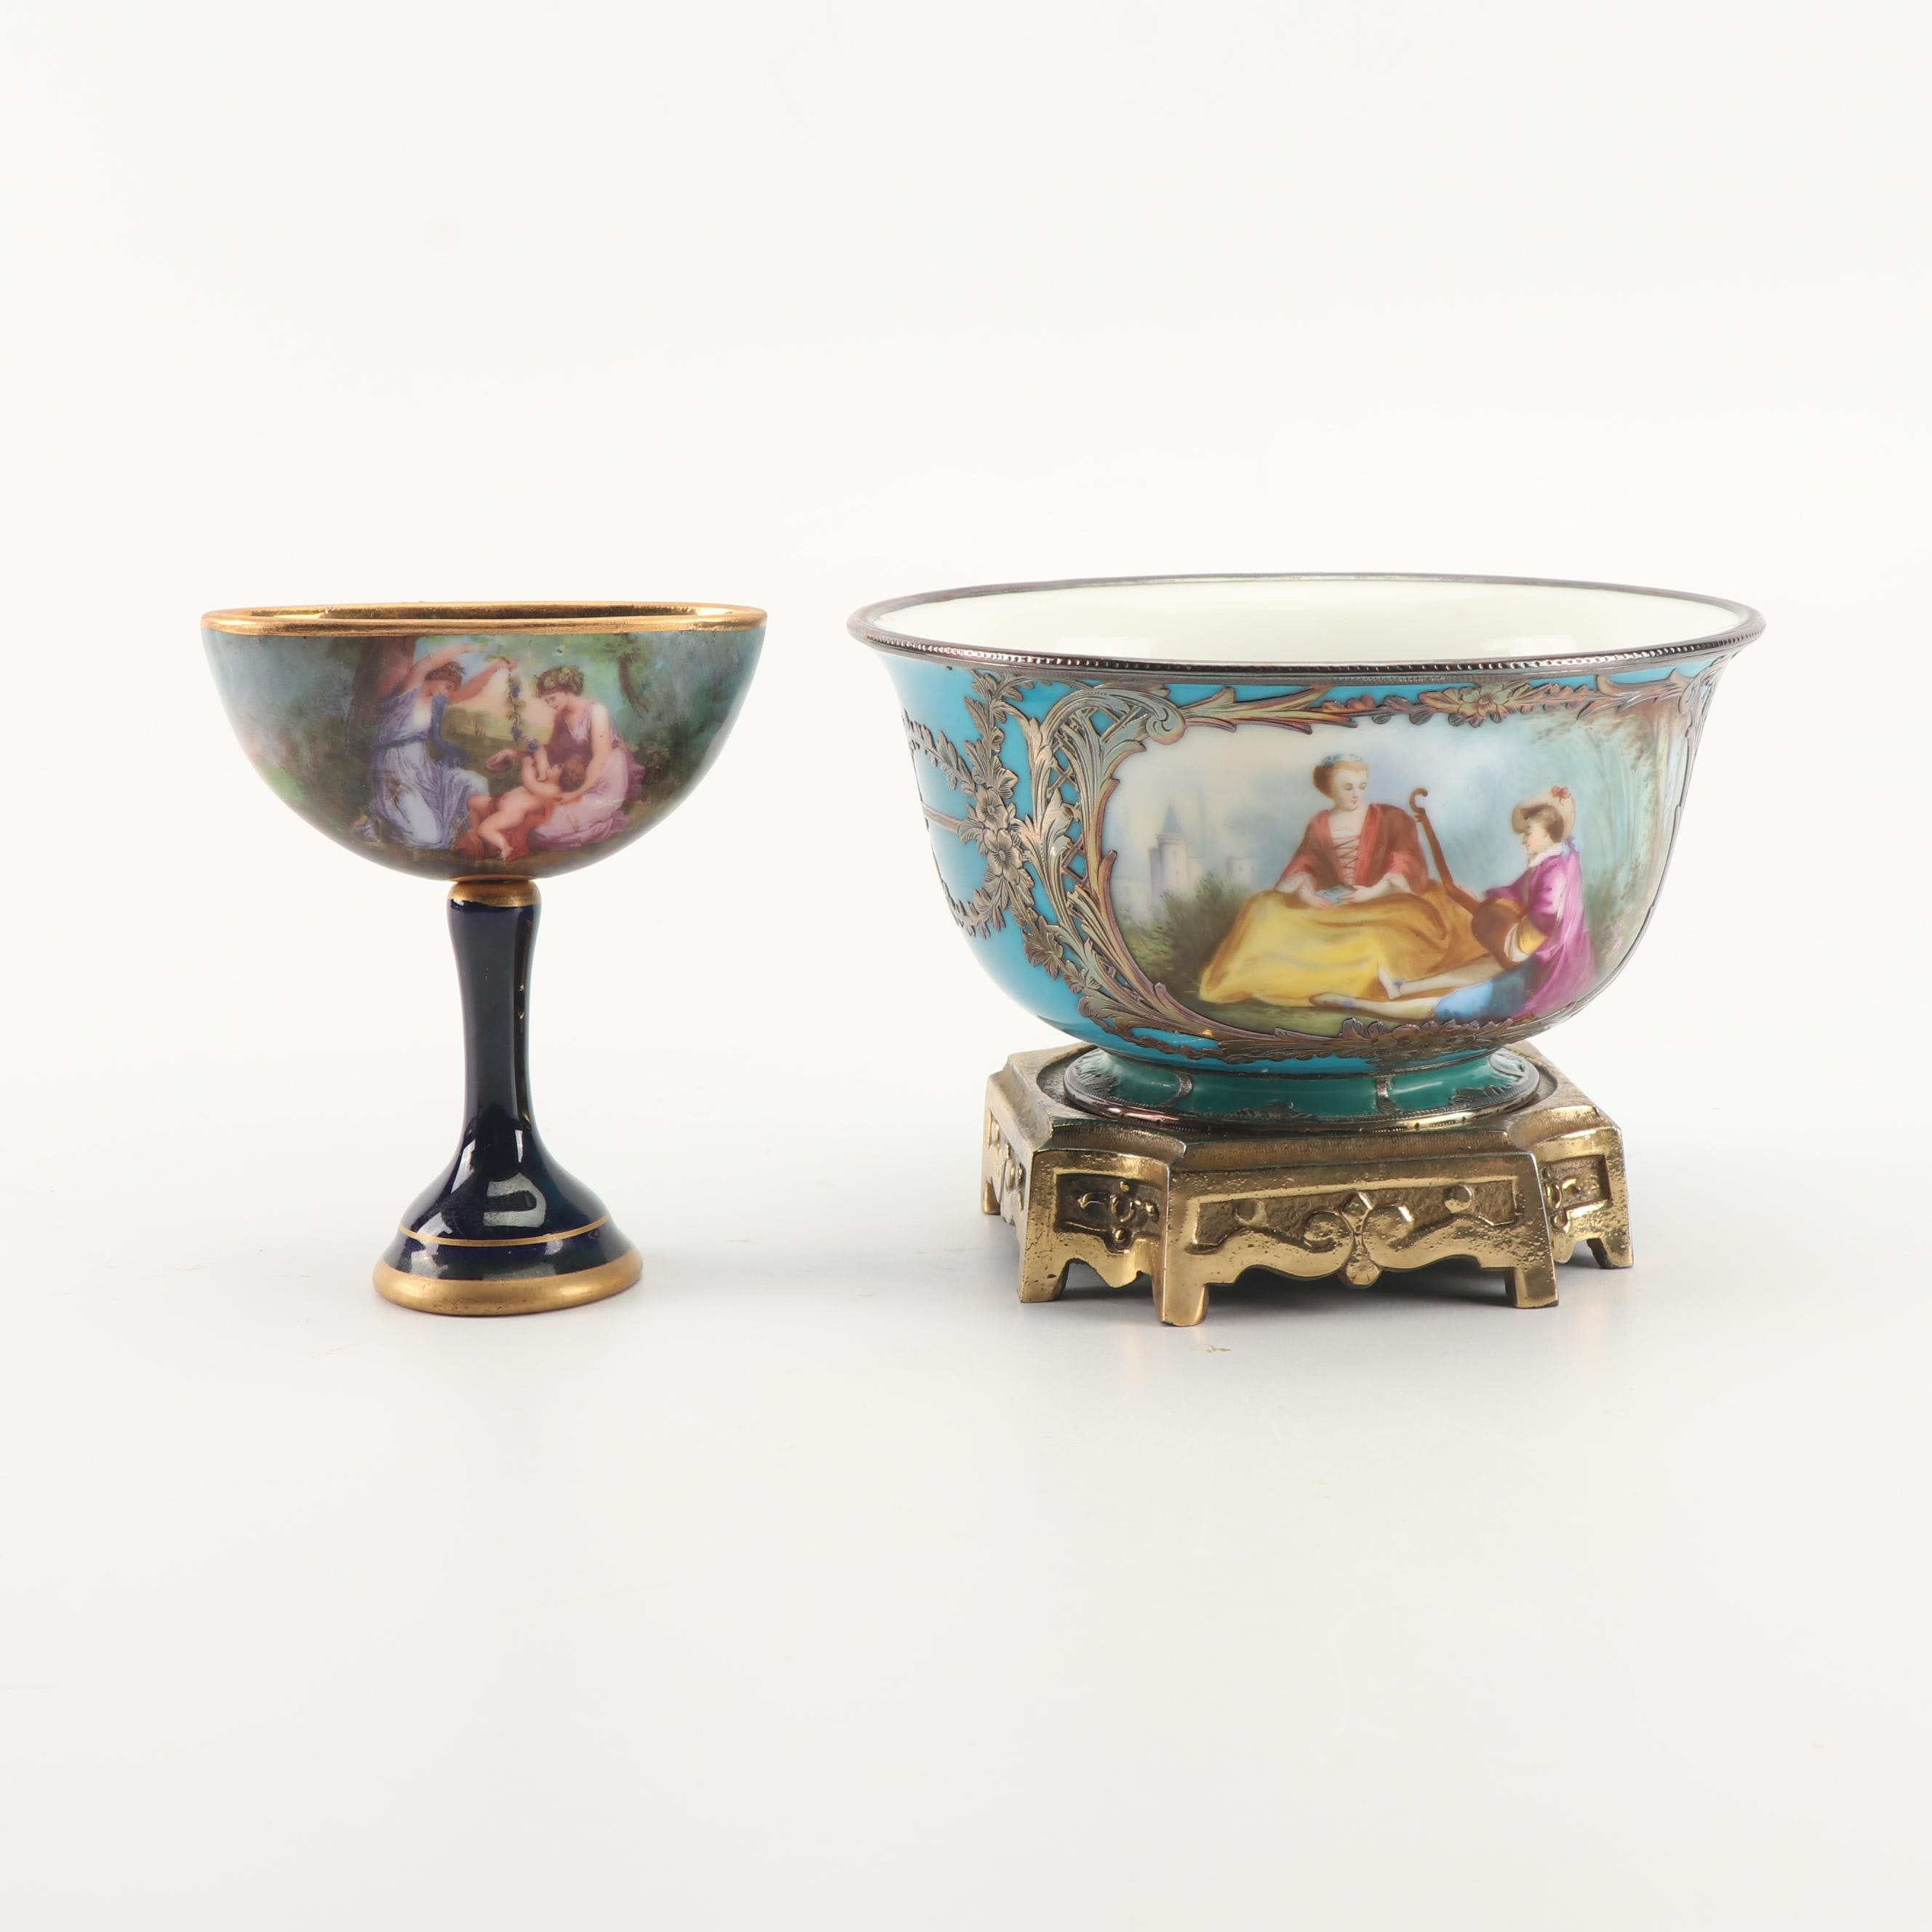 Sevres Style Hand-Painted Porcelain Bowl and Royal Vienna Porcelain Compote